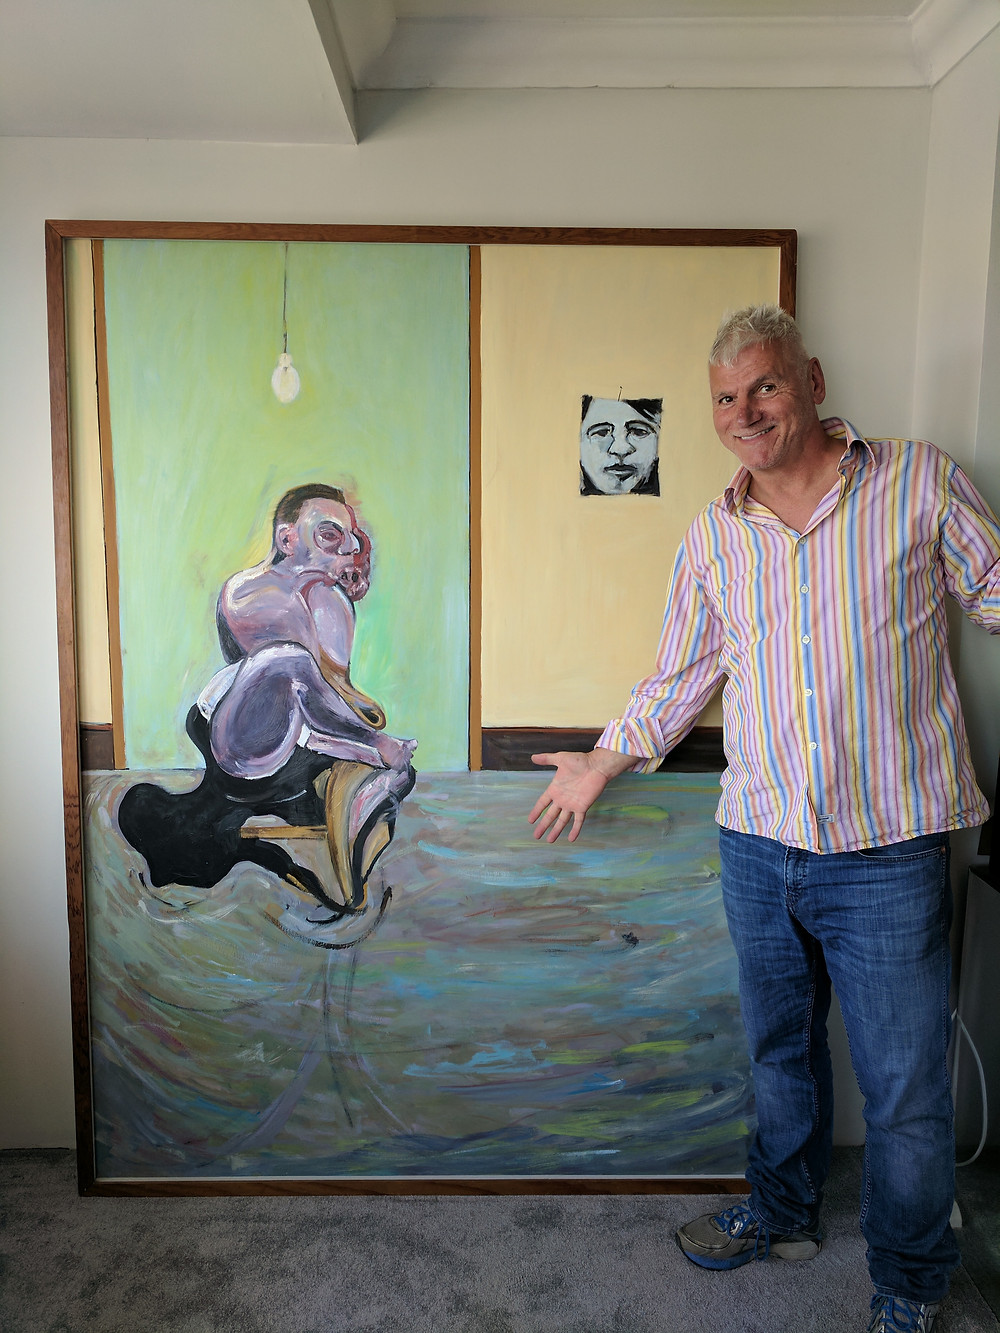 Francis Bacon | David Henty | Art Forger